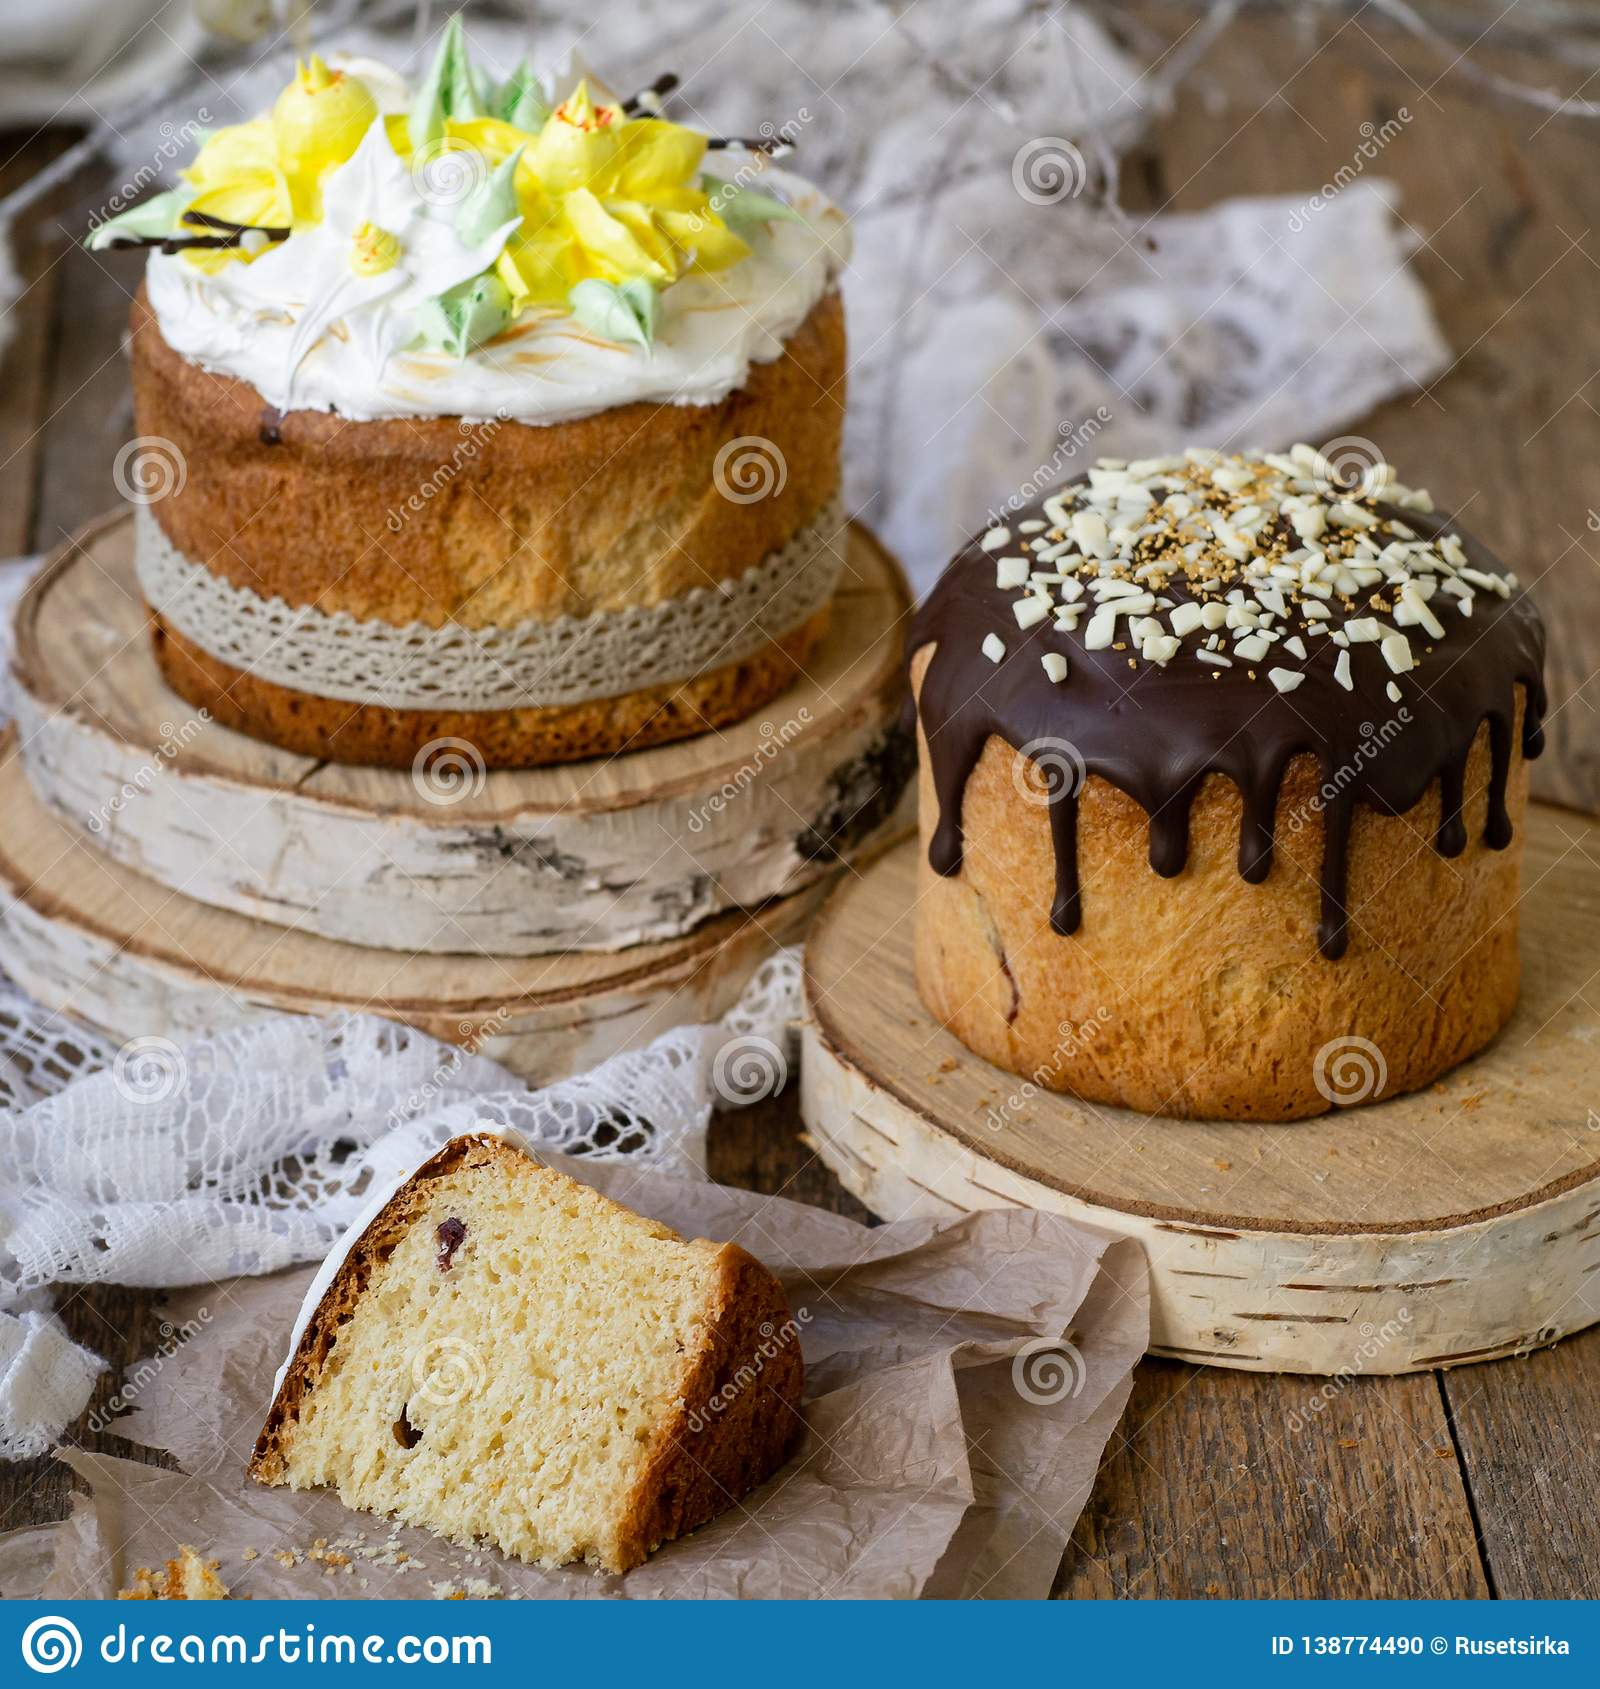 Easter Cake Kulich Traditional Easter Sweet Bread Decorated Meringue Chocolate And Yellow Daffodils On Wooden Background With Stock Photo Image Of Daffodils Culture 138774490